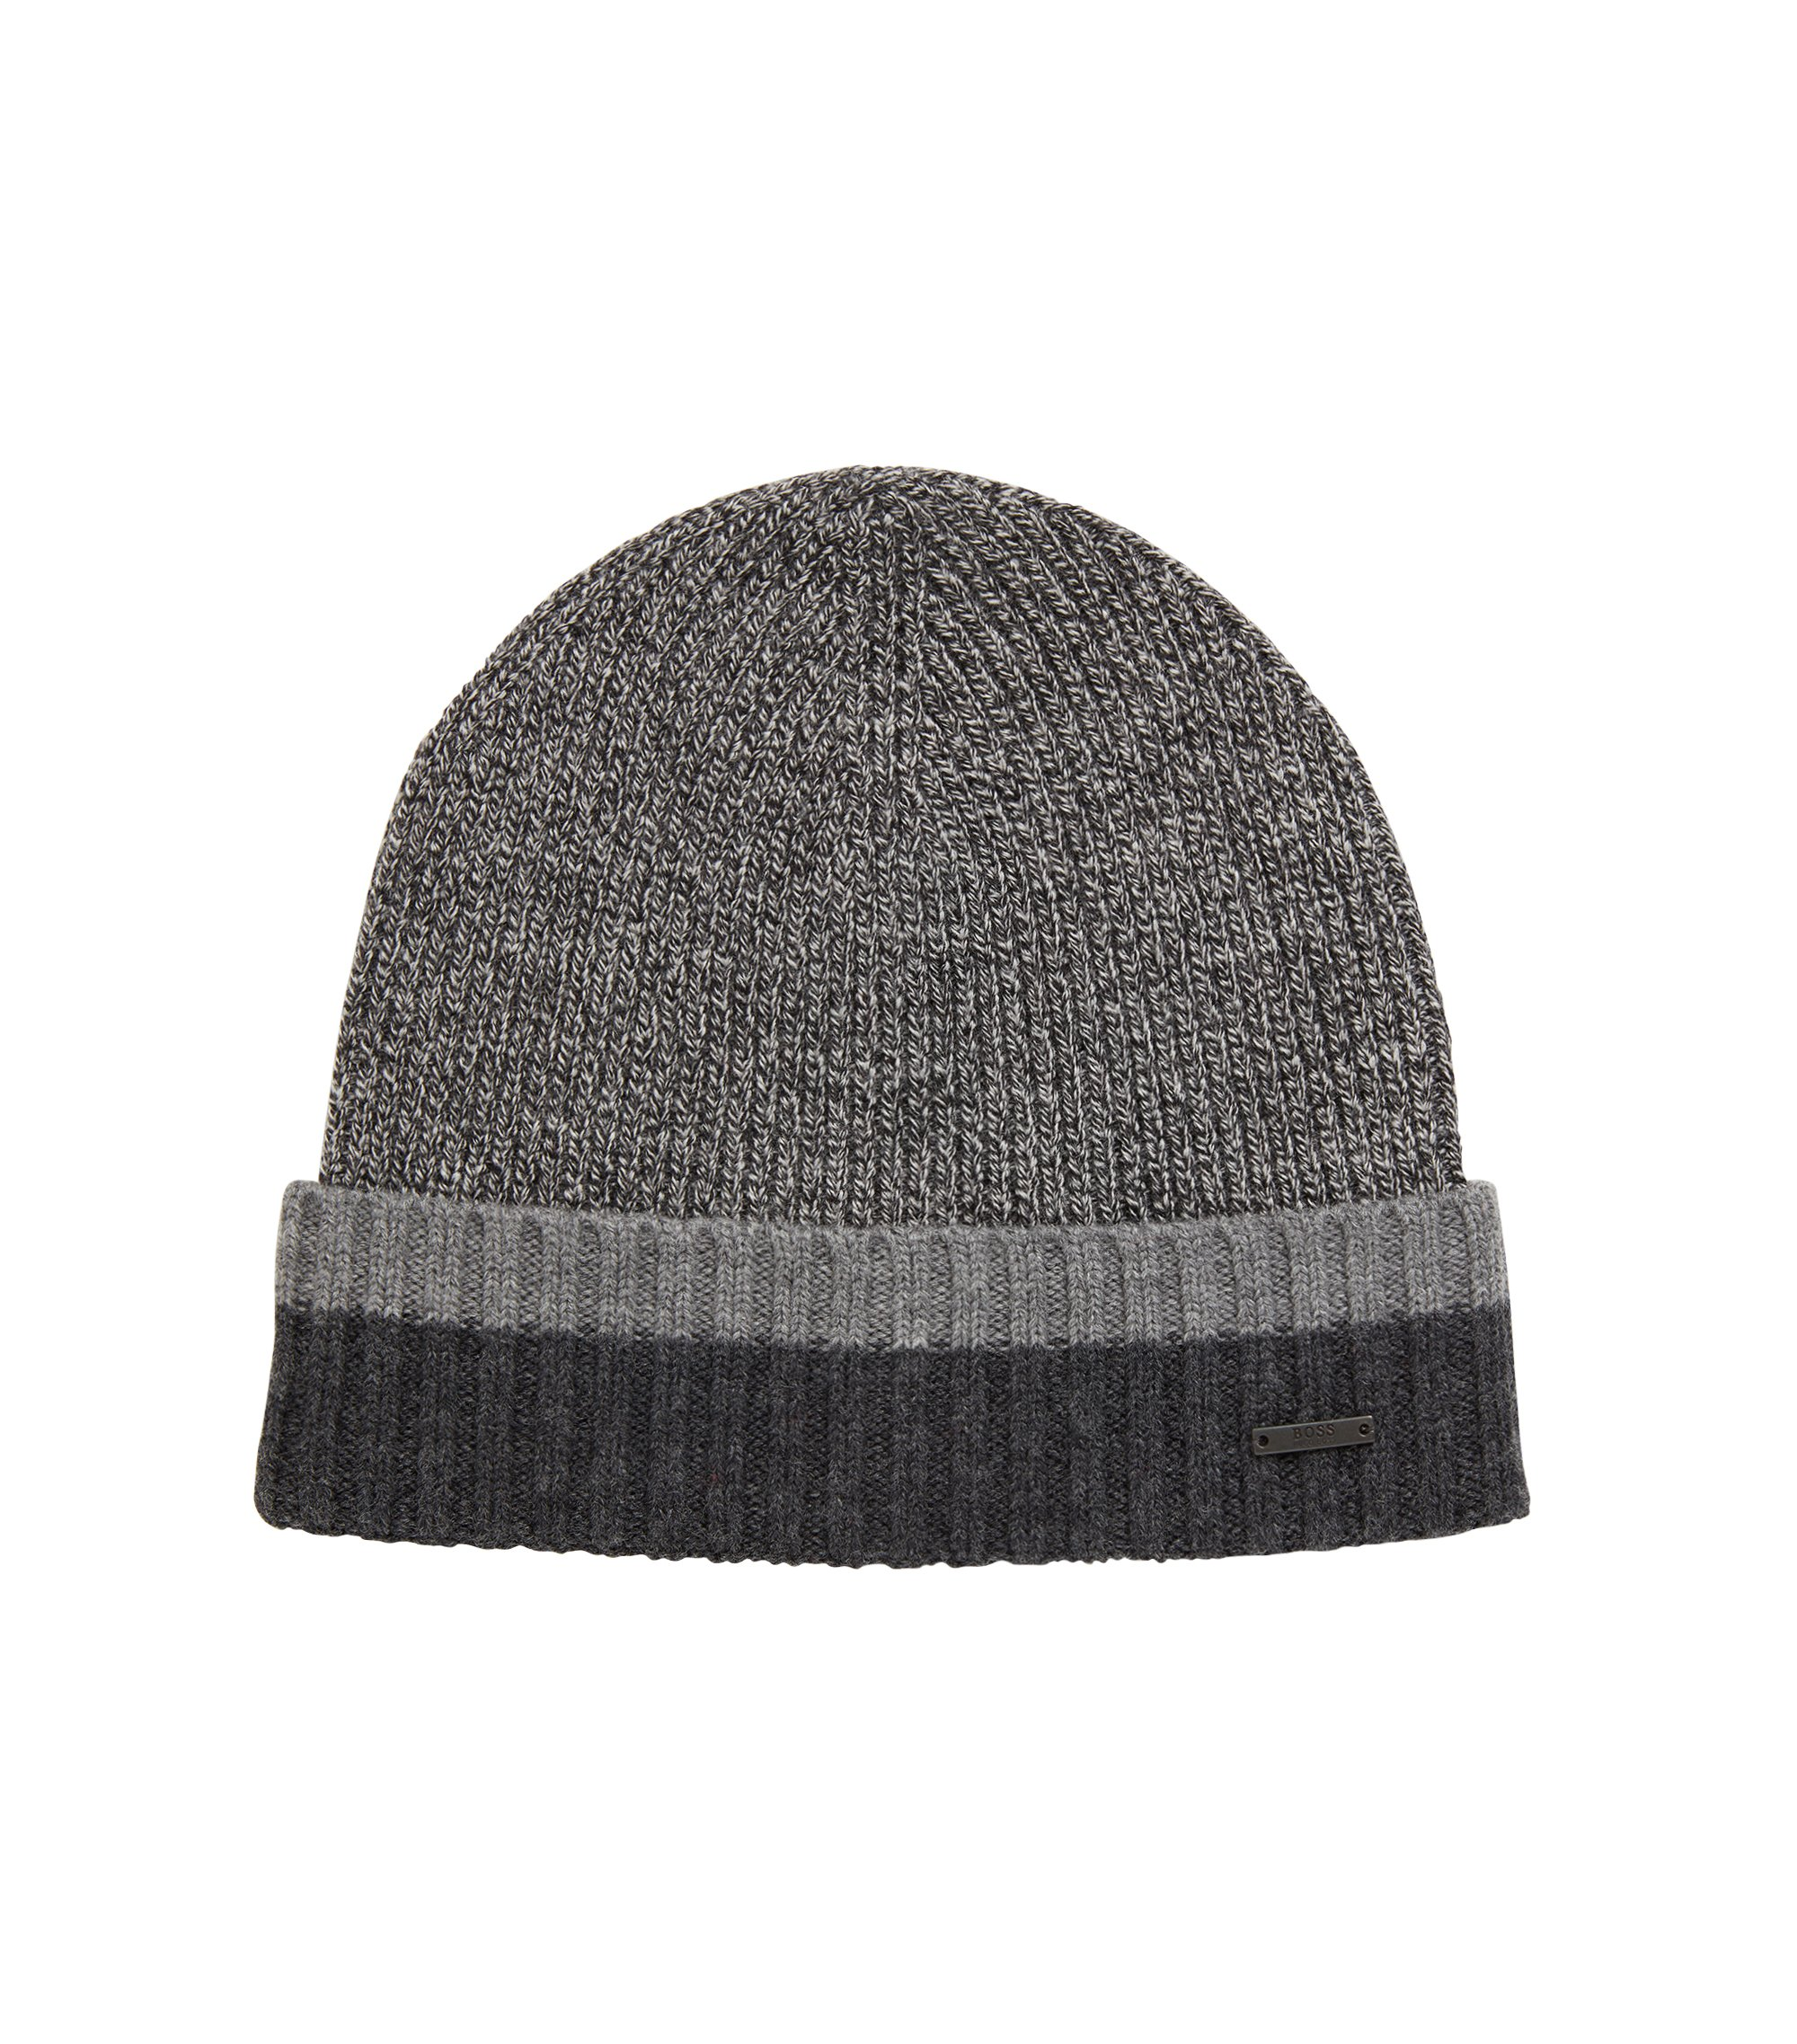 Beanie hat in virgin wool with contrast turn-up, Black